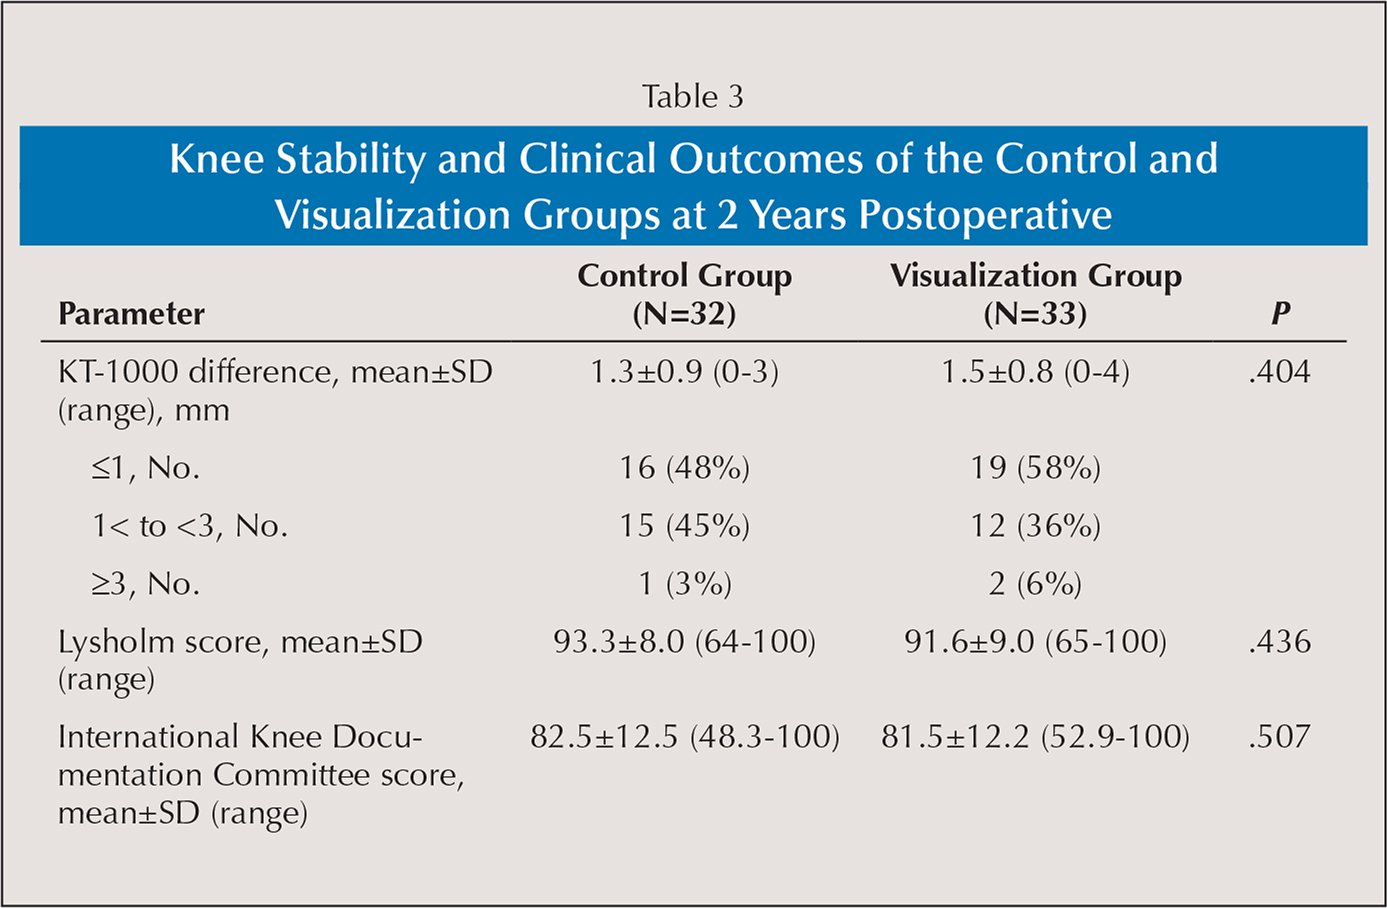 Knee Stability and Clinical Outcomes of the Control and Visualization Groups at 2 Years Postoperative